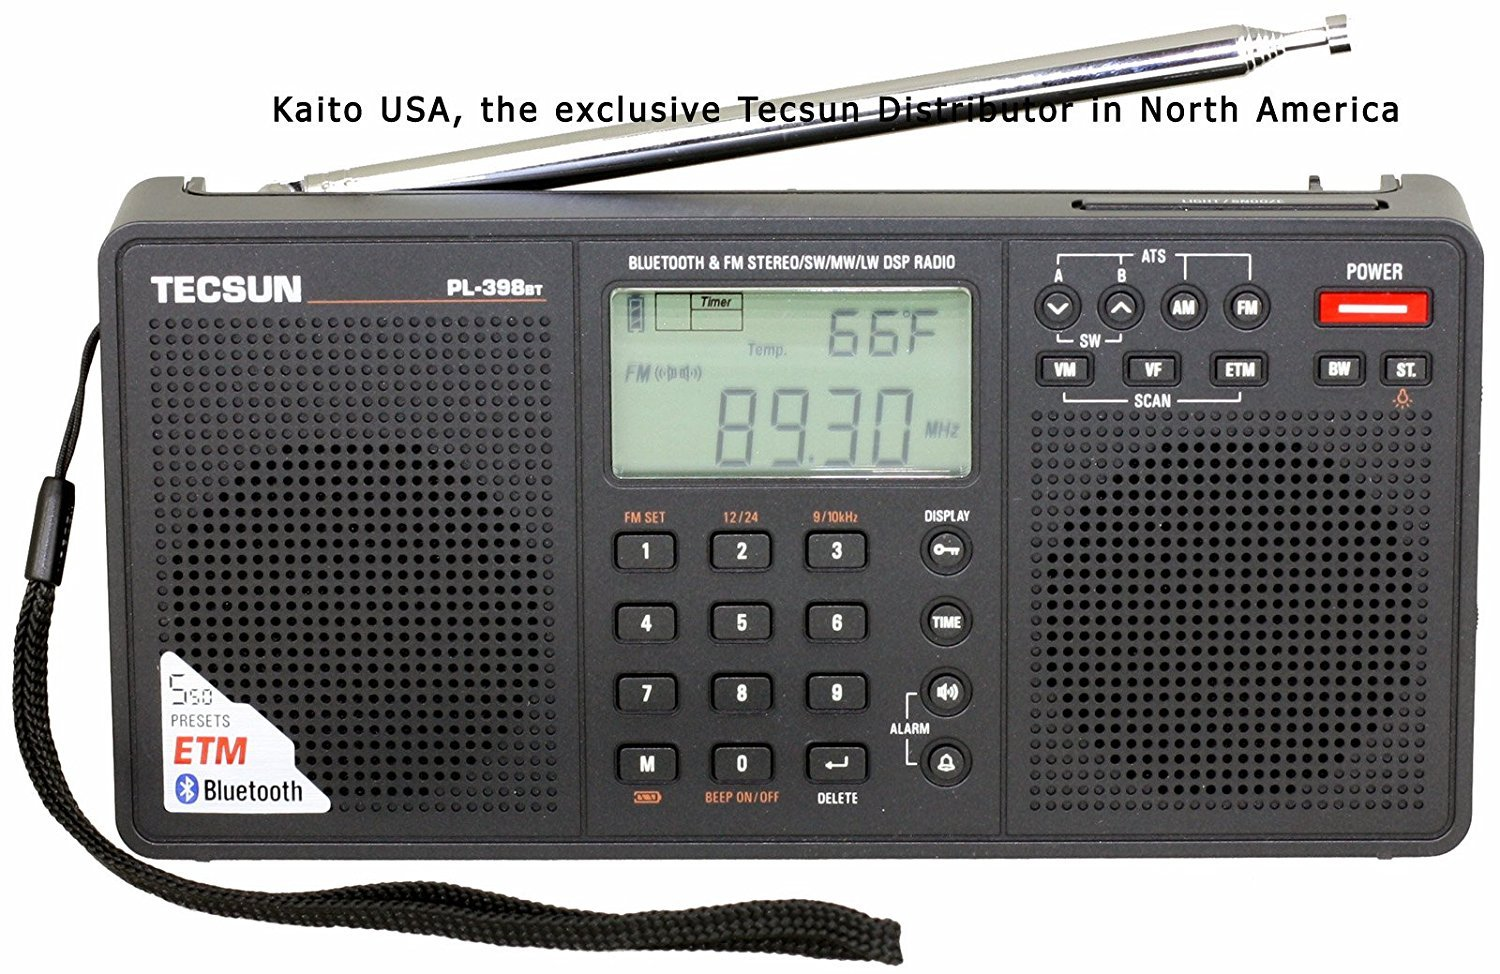 Portable FM stereo //MW //SW DSP Radios World Band Receiver  Sound Alarm HOT